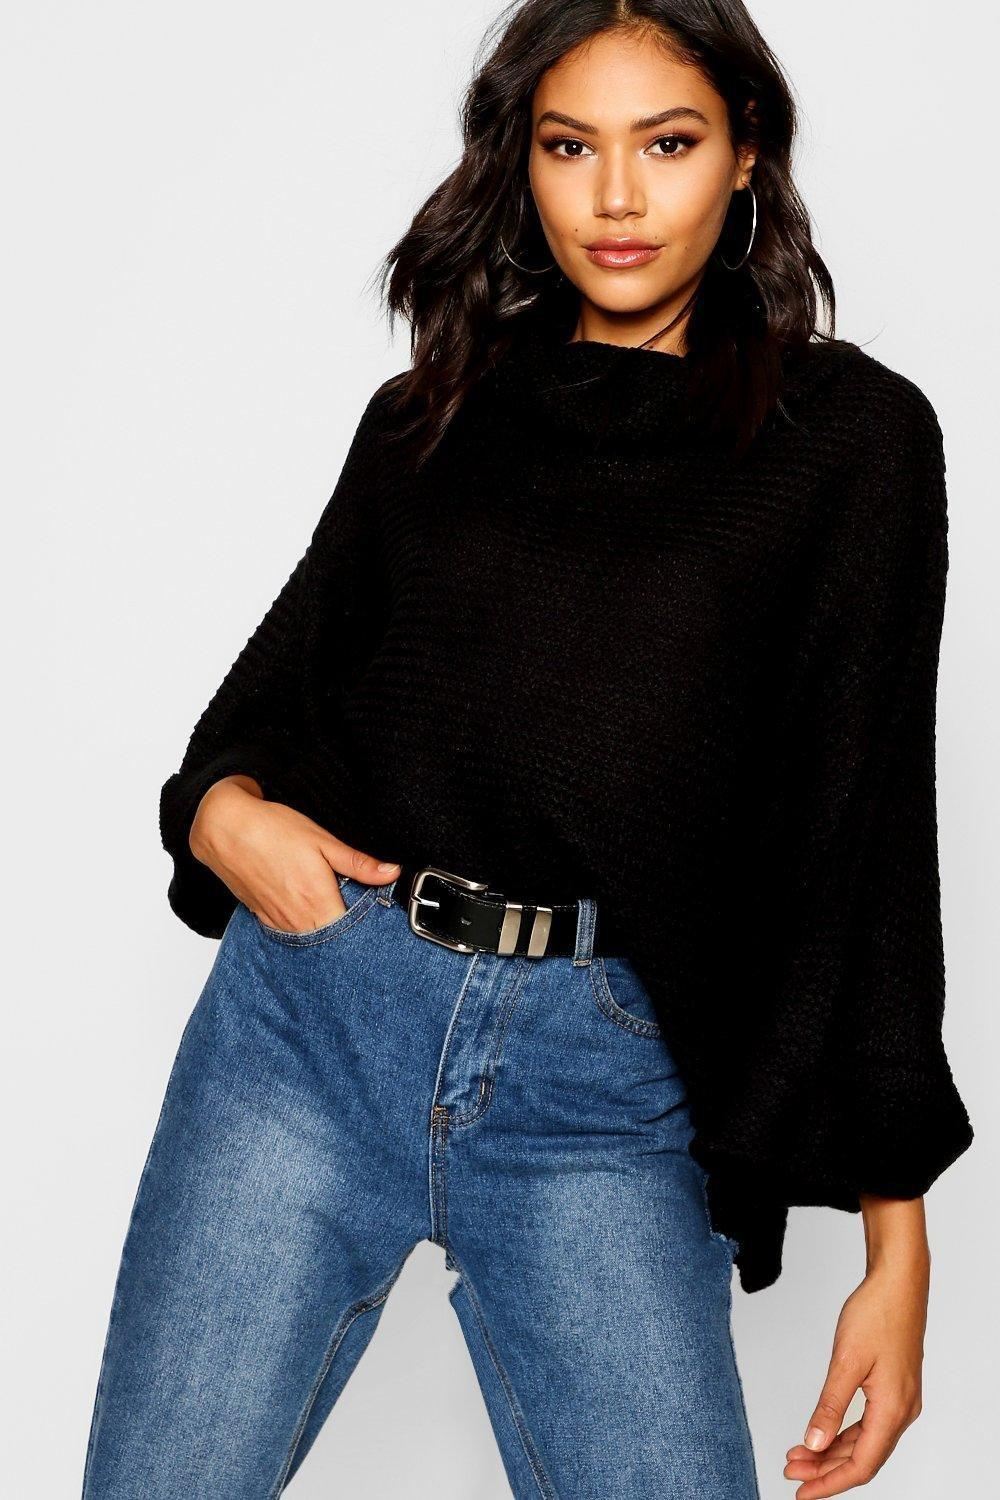 Boohoo Cowl Neck Sweater With Split Side Seam in Black - Lyst 68e24678d